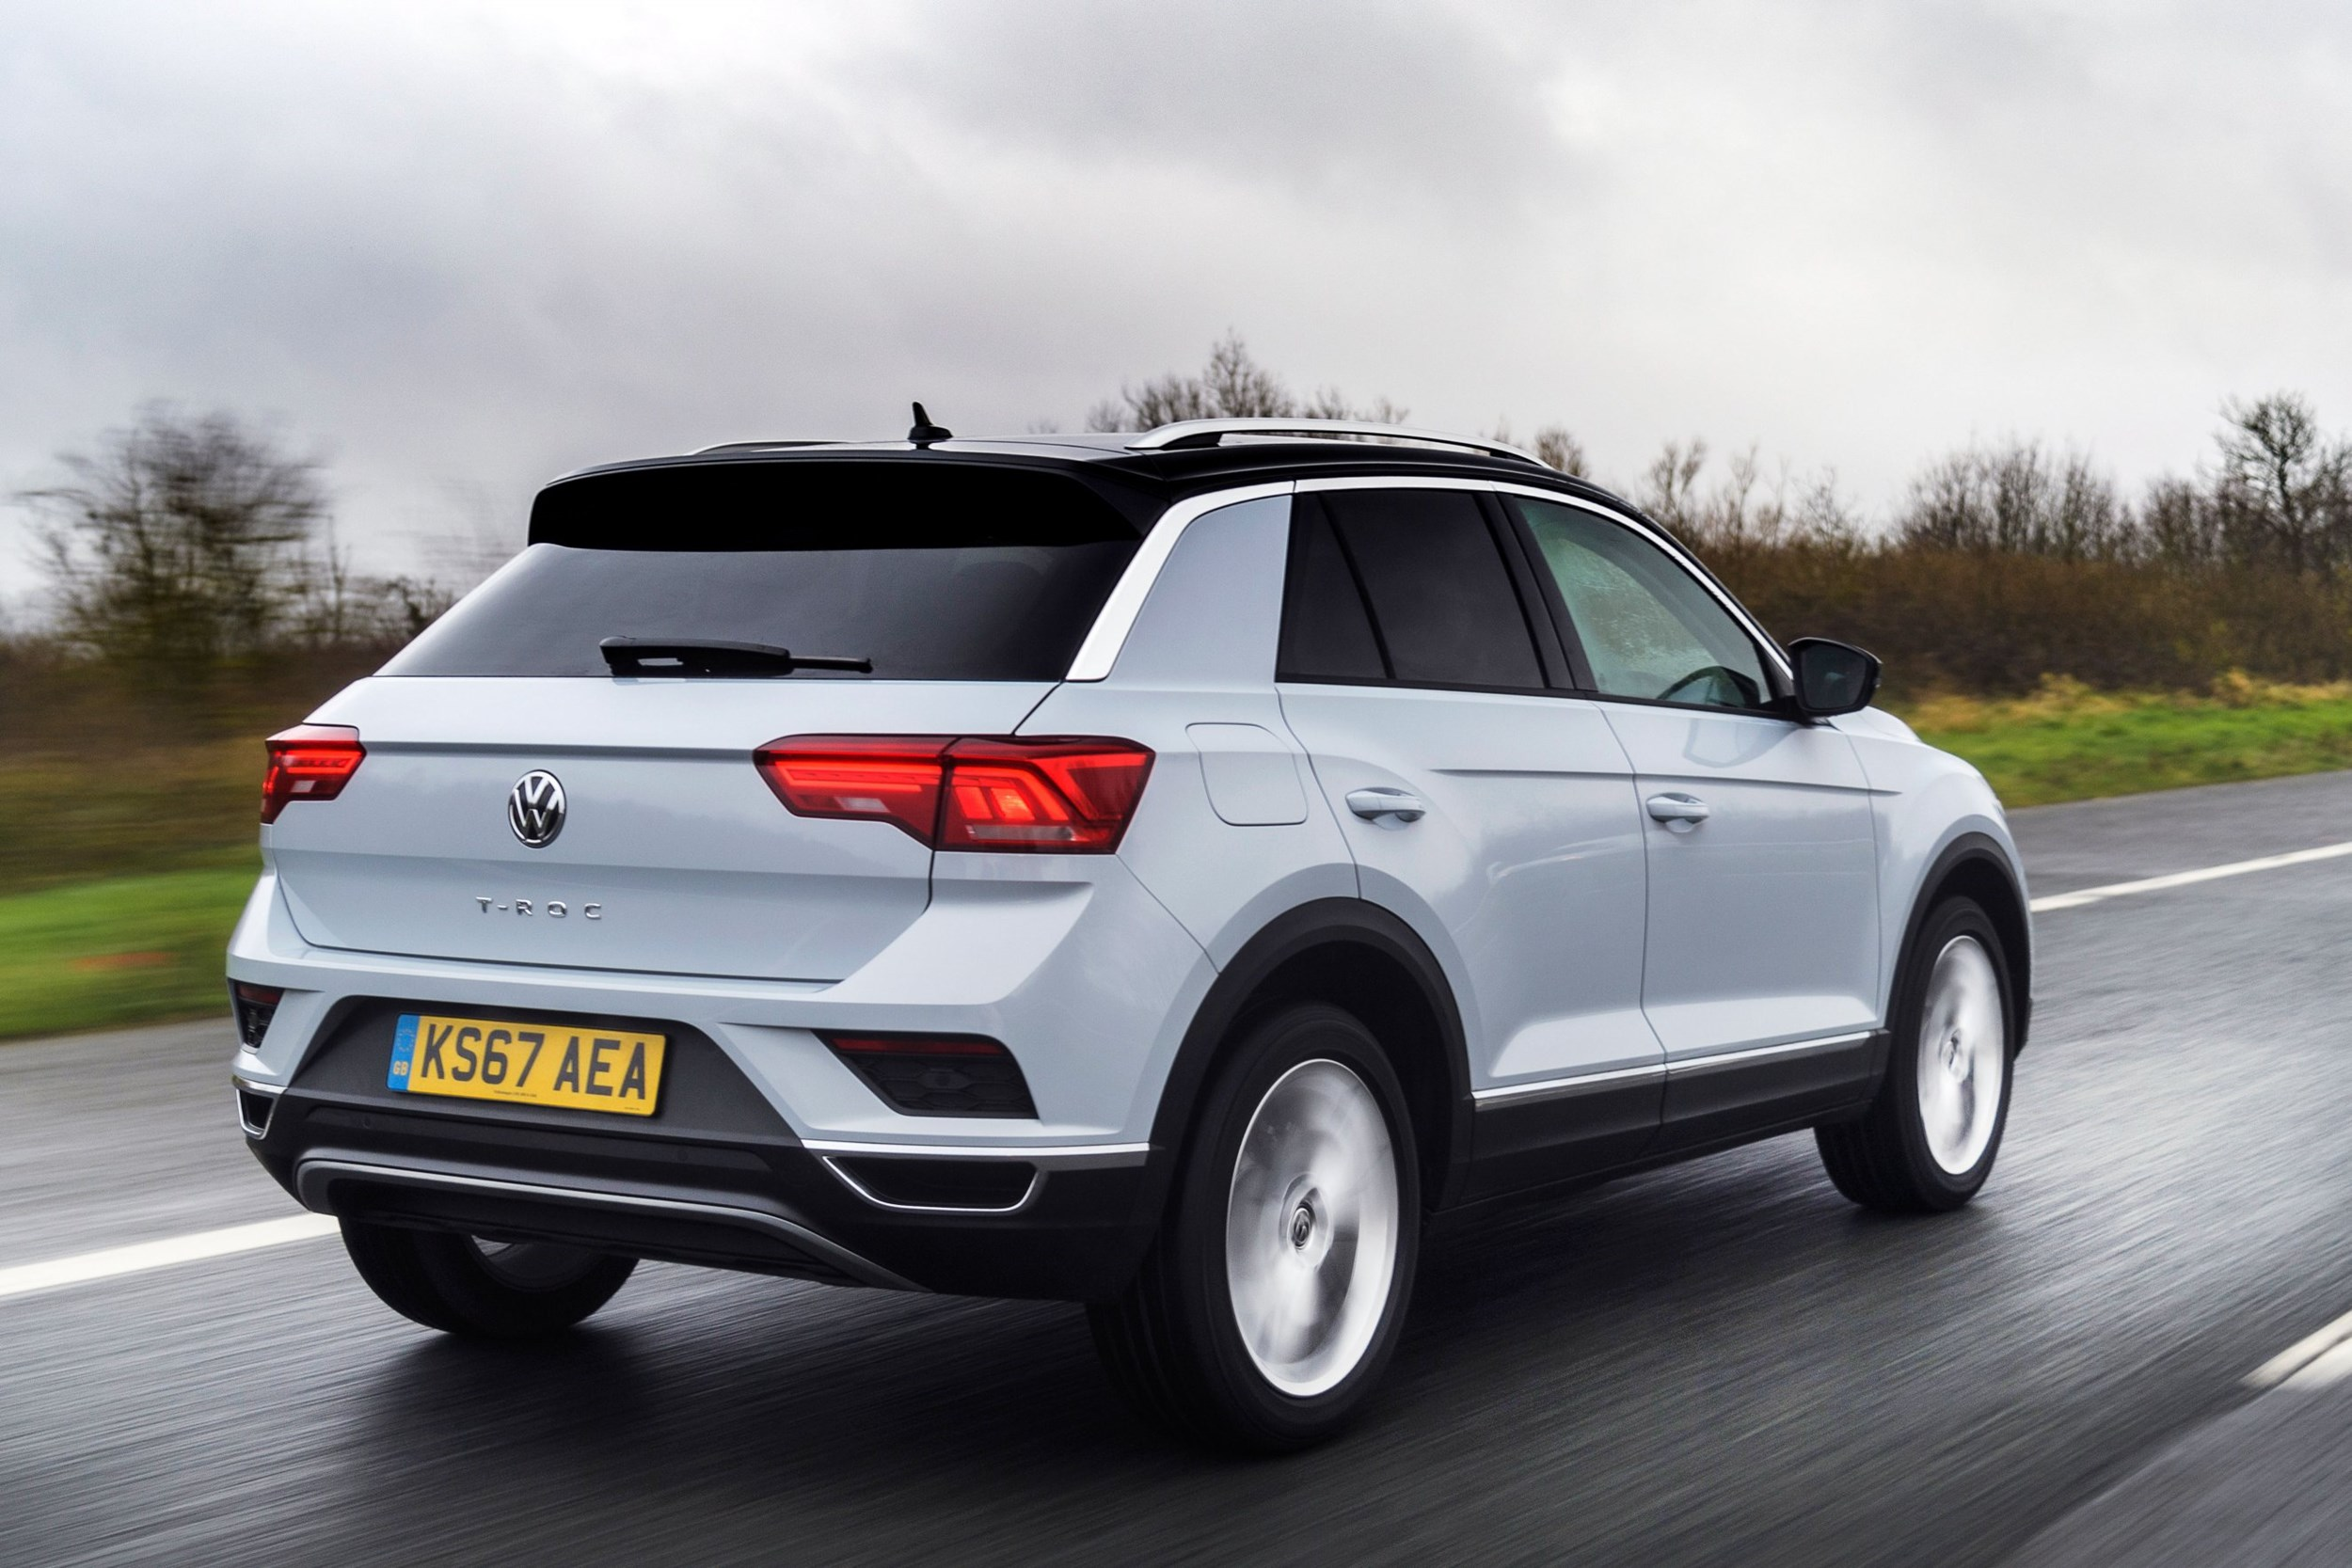 vw t roc 1 0 tsi is fun to drive and cheap to operate company car reviews. Black Bedroom Furniture Sets. Home Design Ideas